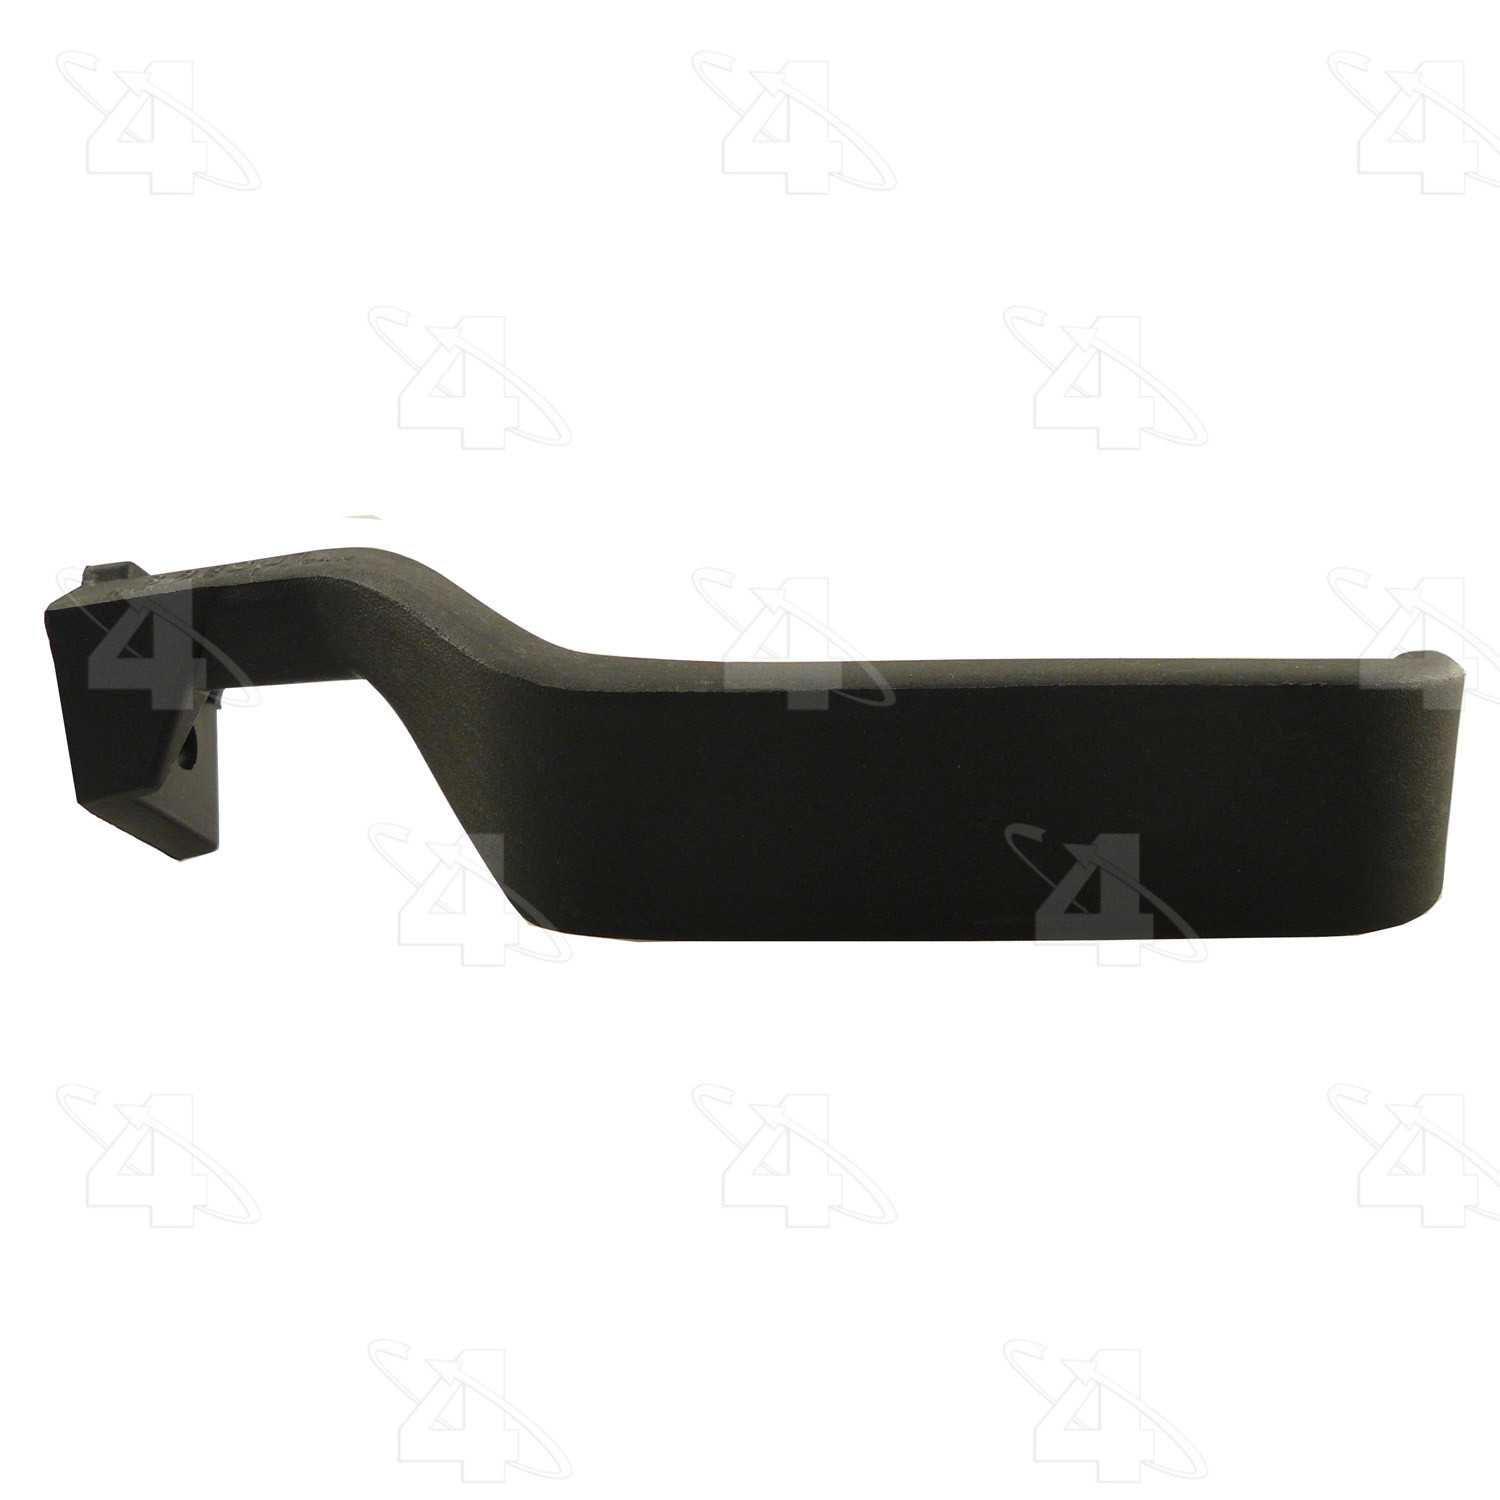 PARTS MASTER/ACI - Interior Door Handle - P67 61301